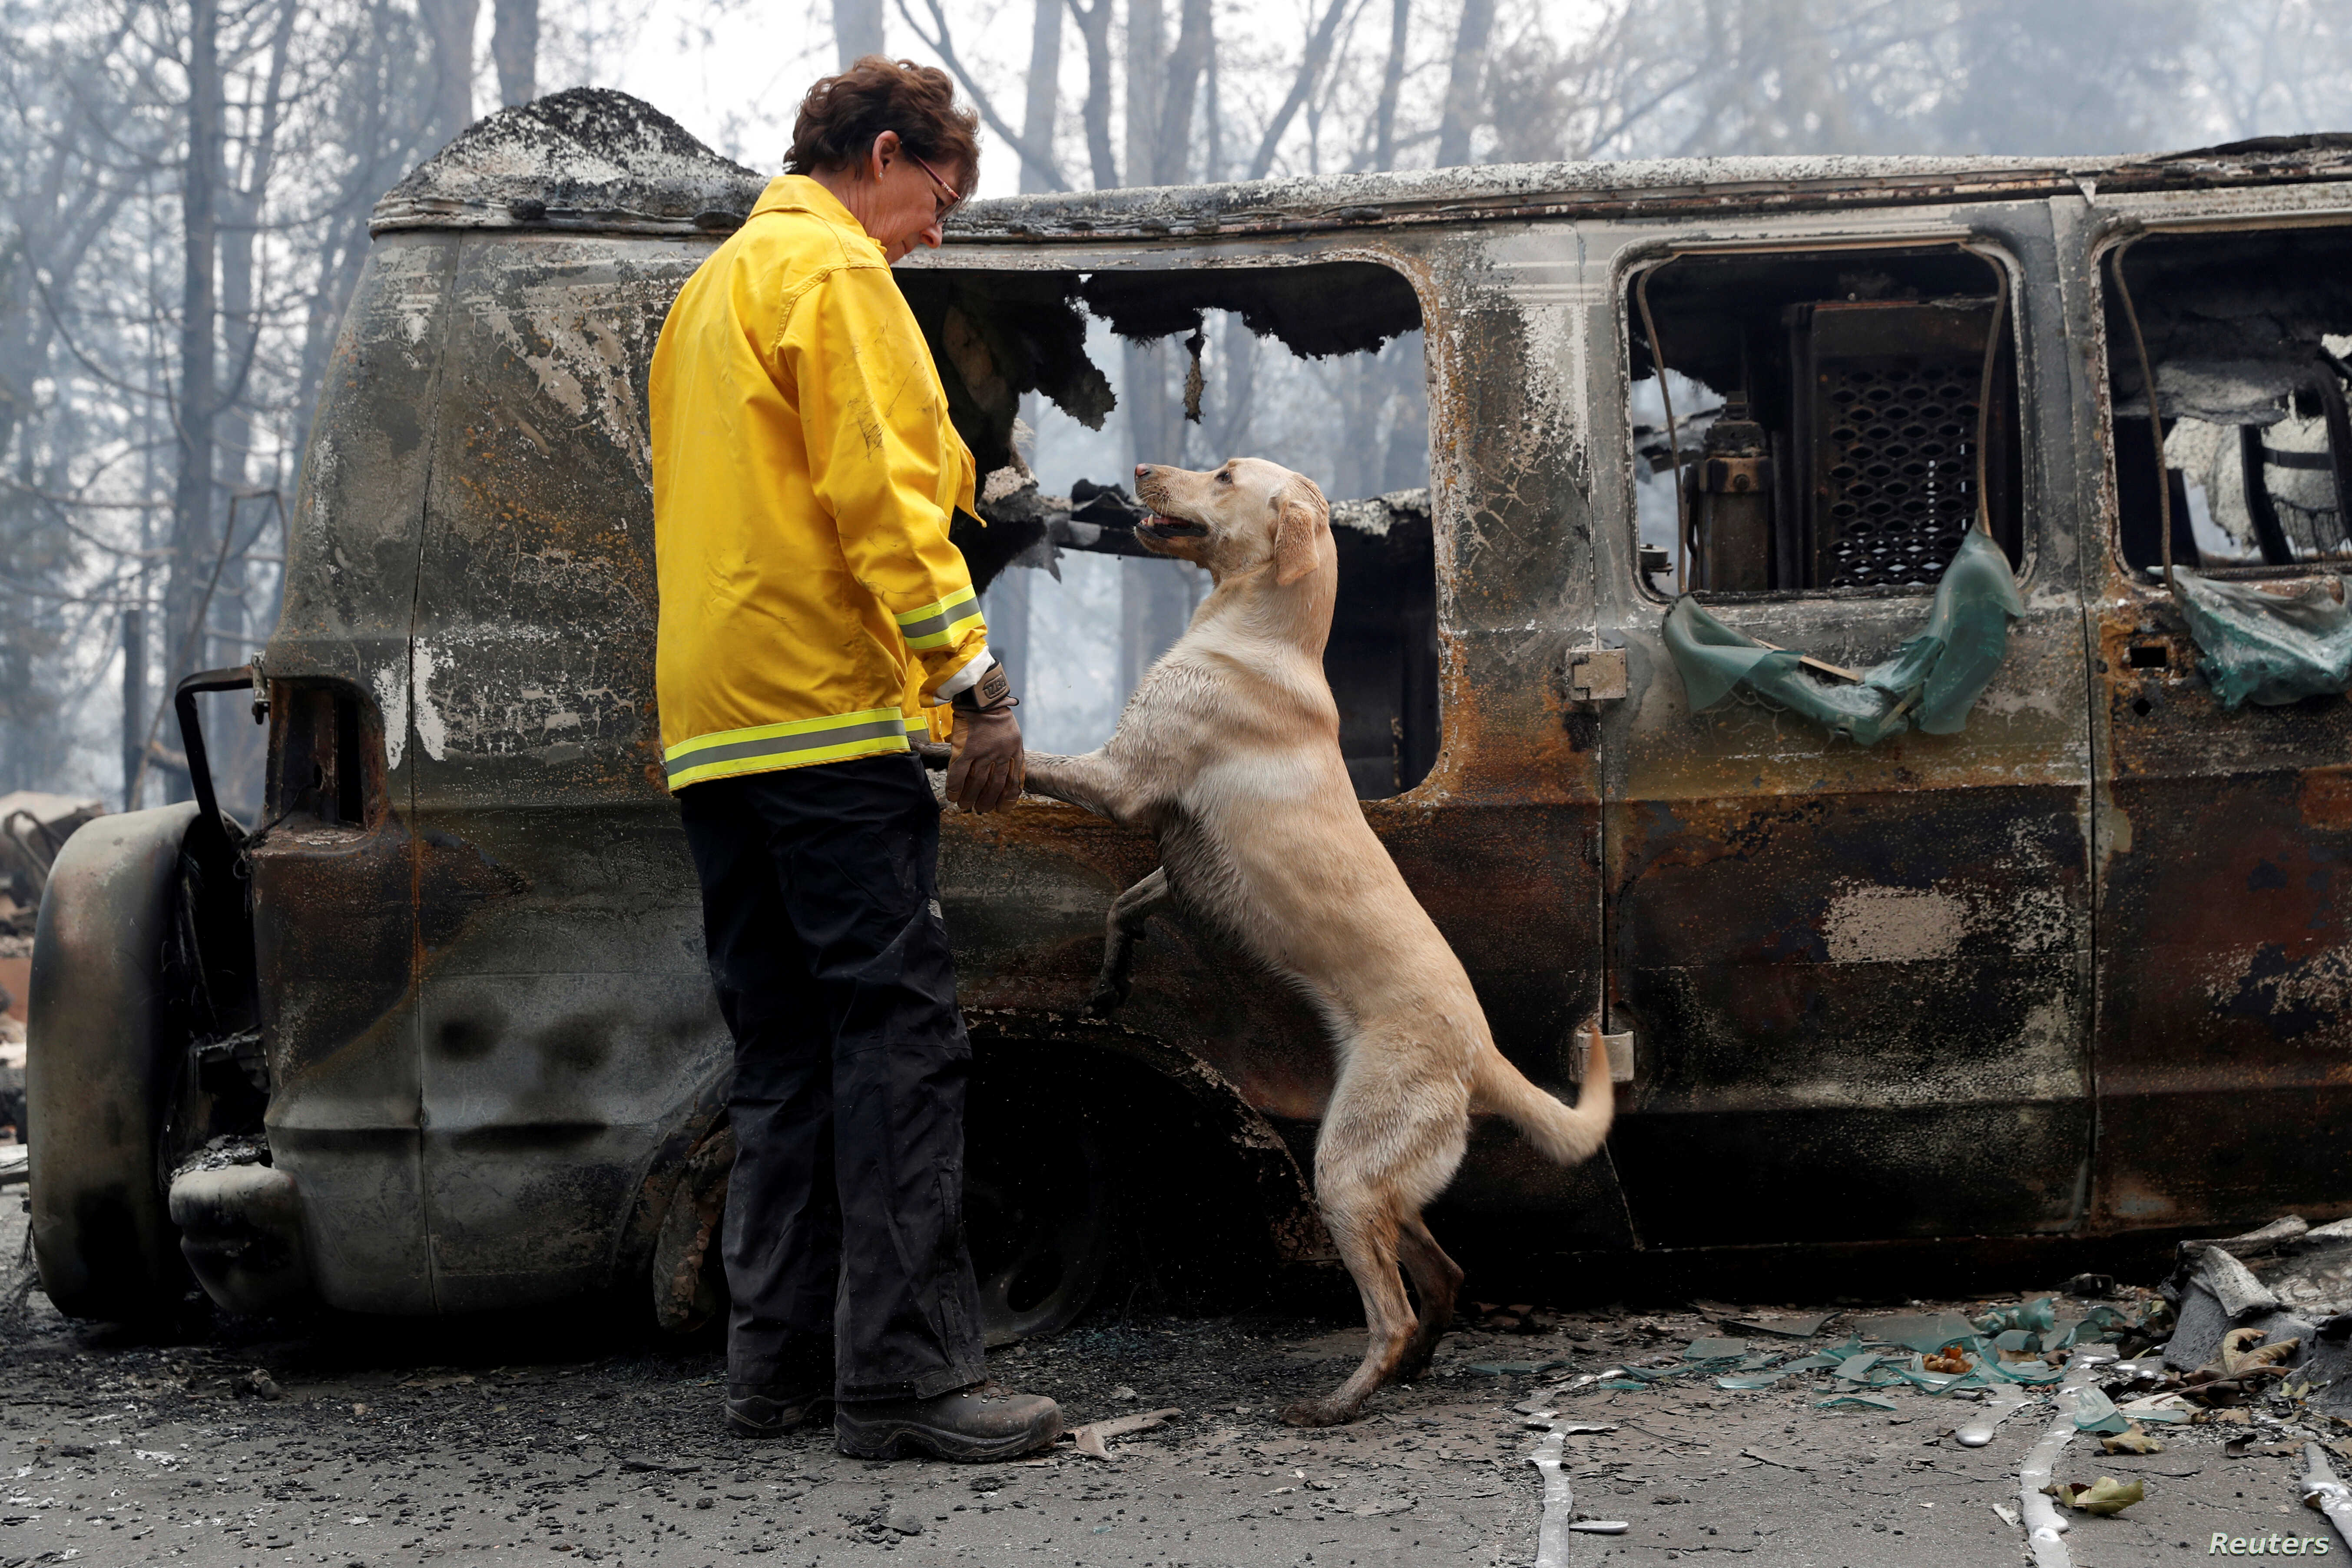 Karen Atkinson, of Marin, searches for human remains with her cadaver dog, Echo, in a van destroyed by the Camp Fire in Paradise, Calif., Nov. 14, 2018.